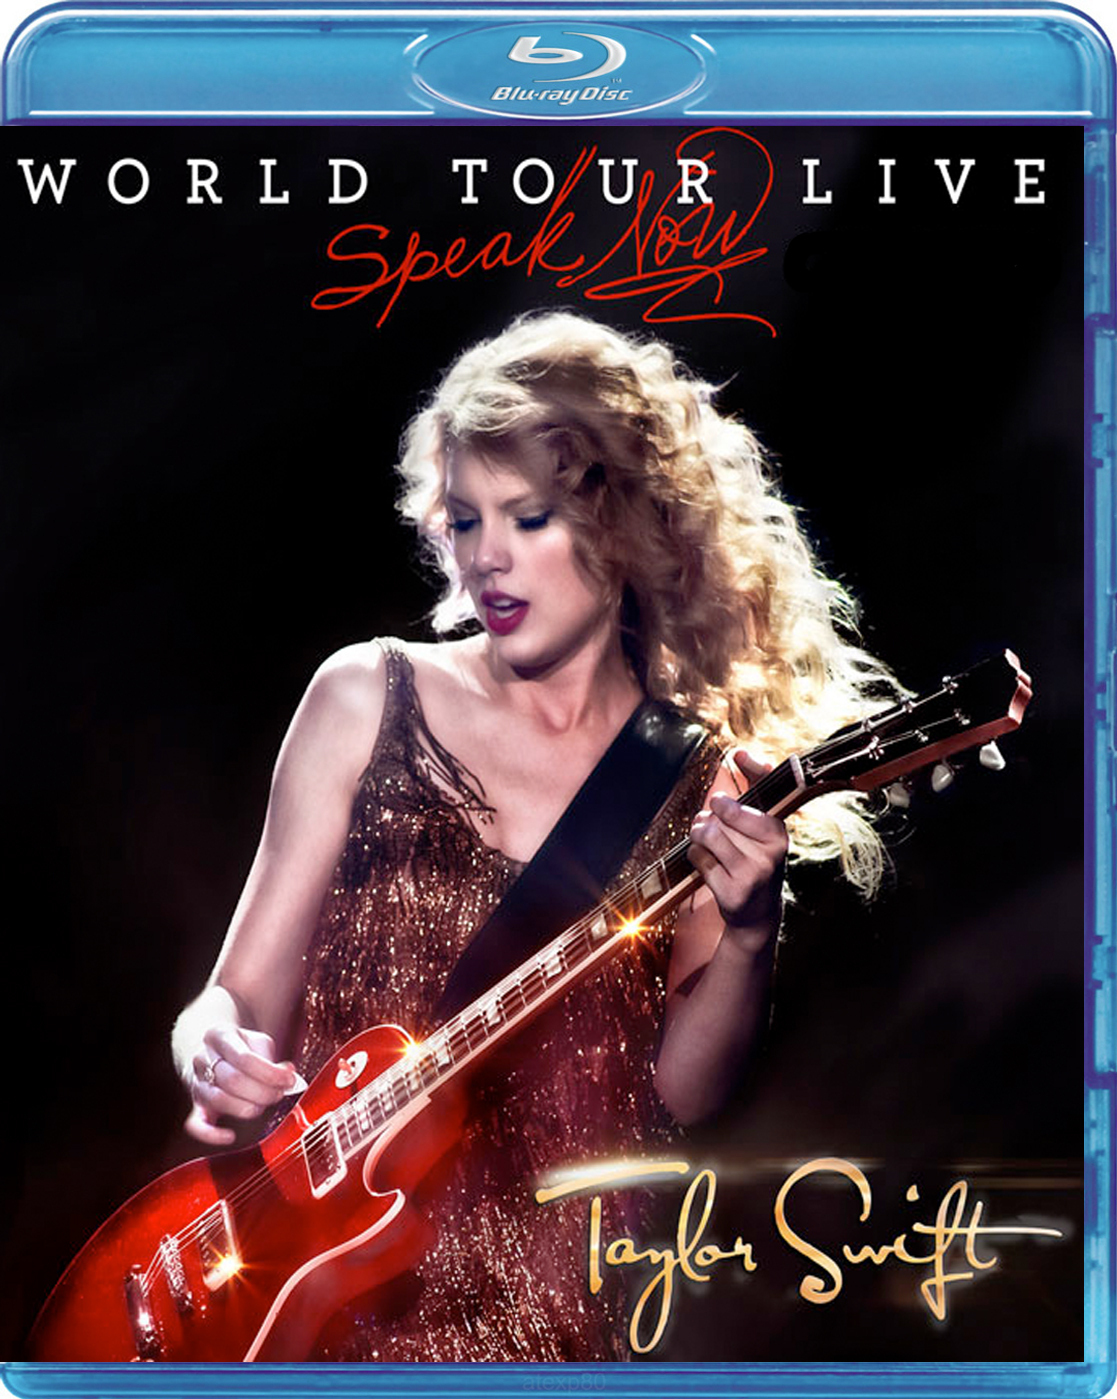 http://2.bp.blogspot.com/-po4F0eDoplI/T8wXB2xavlI/AAAAAAAACzg/MpX6jjOmJqQ/s1600/Taylor.Swift.Speak.Now.World.Tour.Live.2011.jpg